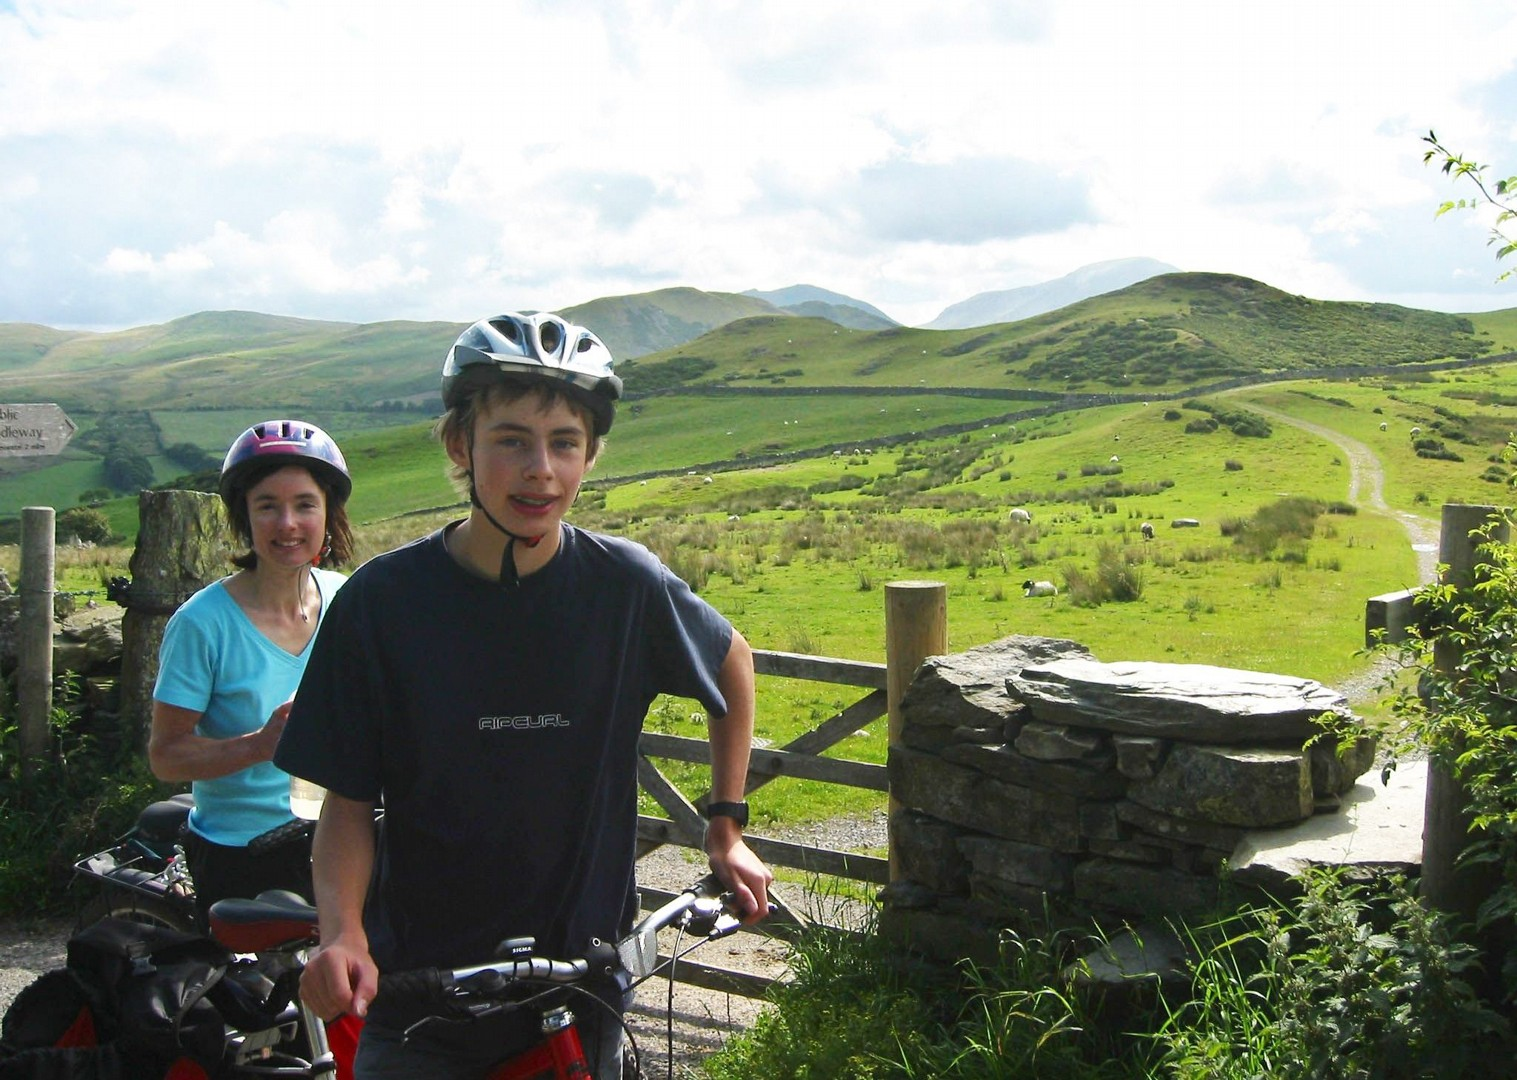 family-guided-cycling-holiday-uk-lake-district-bike-skills.jpg - UK - Lake District - Guided Family Bike Skills - Family Cycling